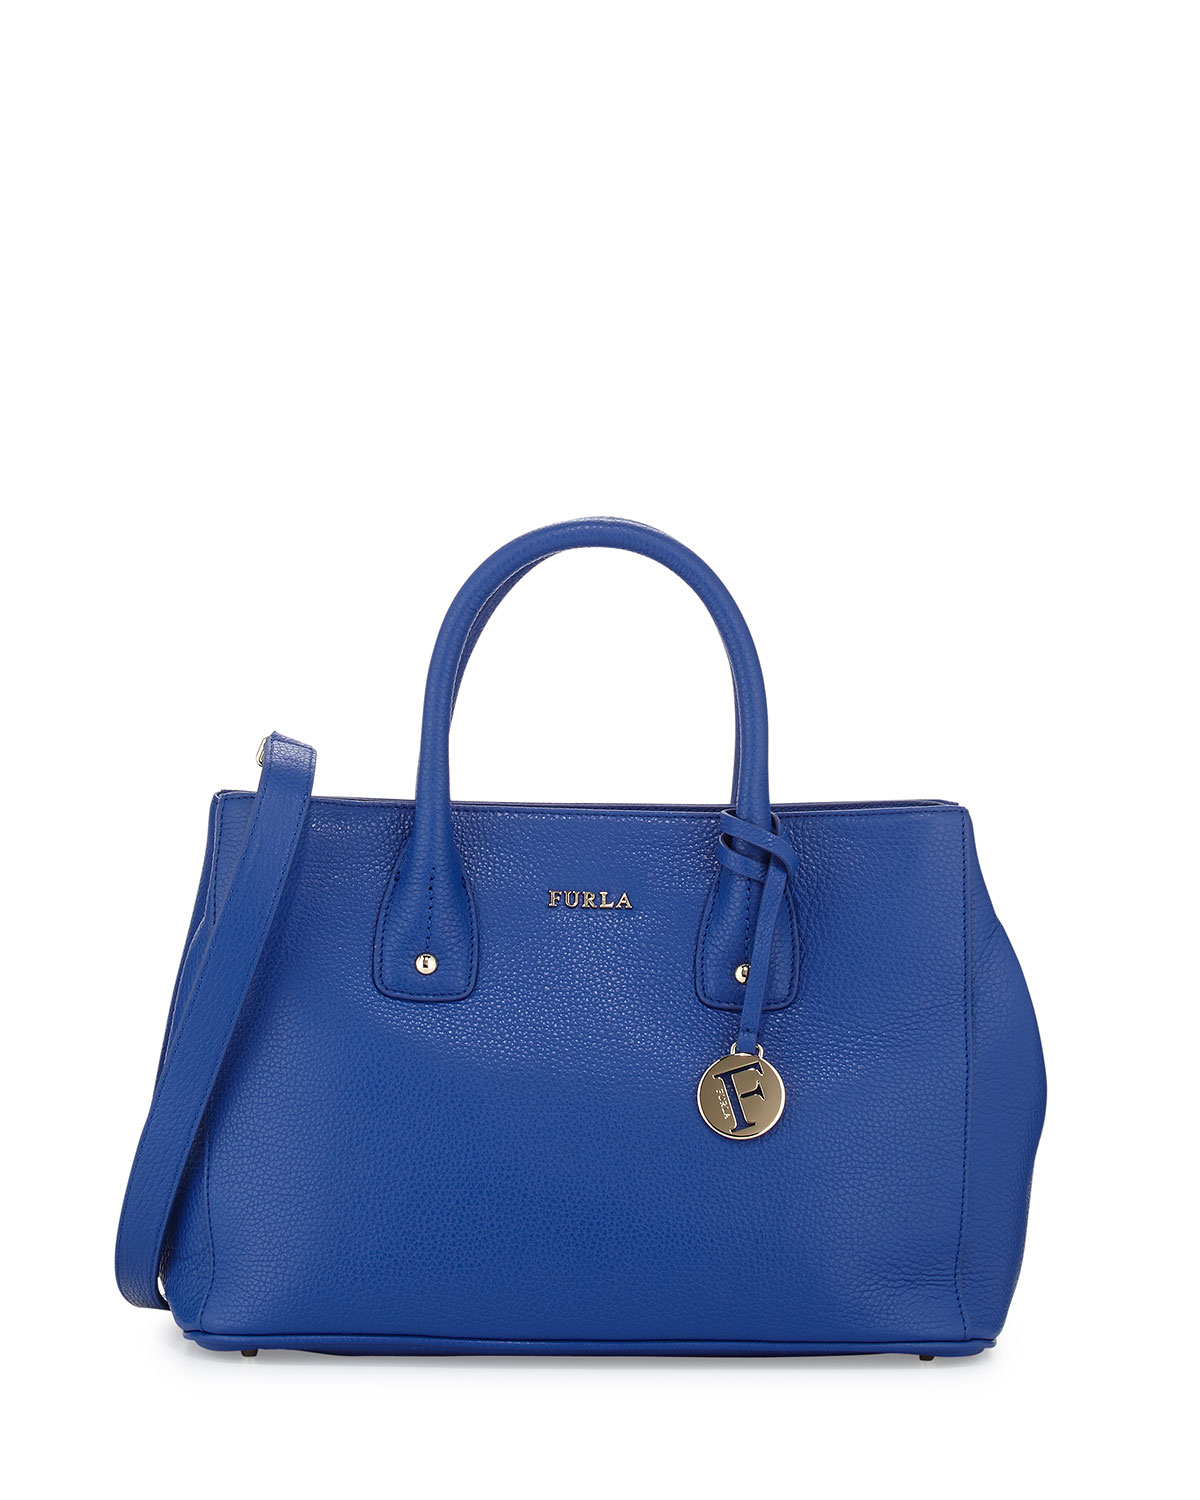 Furla Serena Small Leather Tote Bag in Blue | Lyst